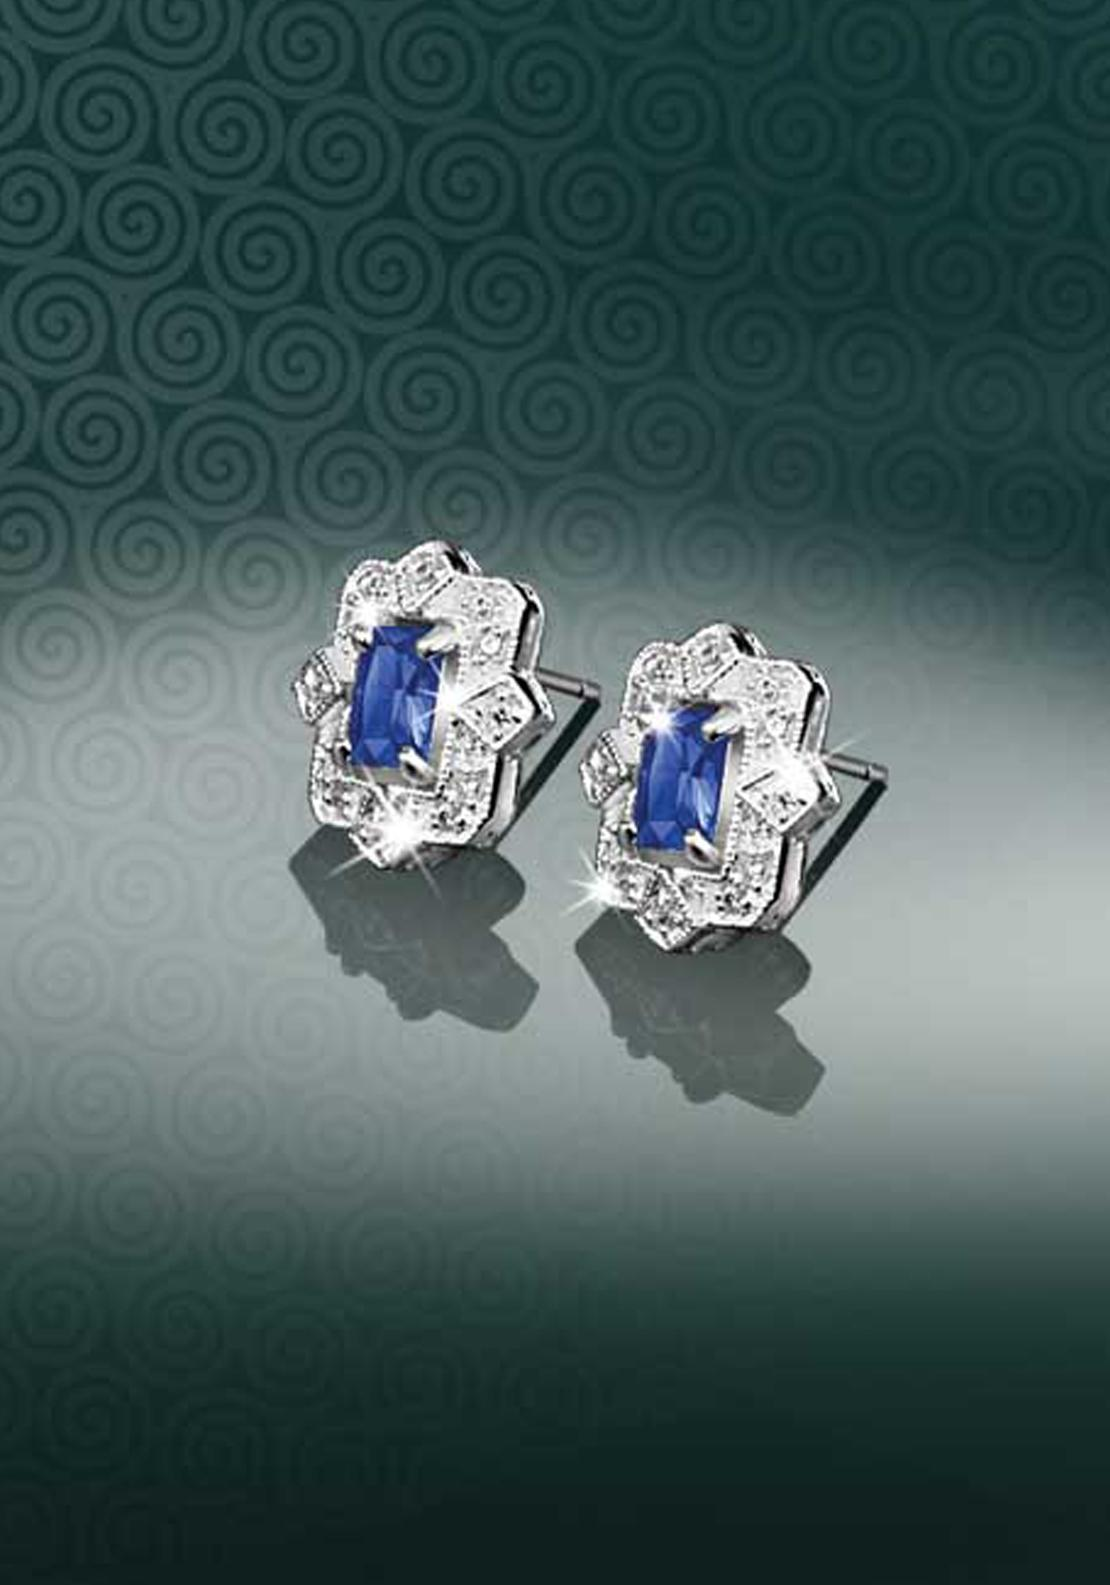 Newbridge Maureen O'Hara Crystal Earrings, Clear / Sapphire Blue